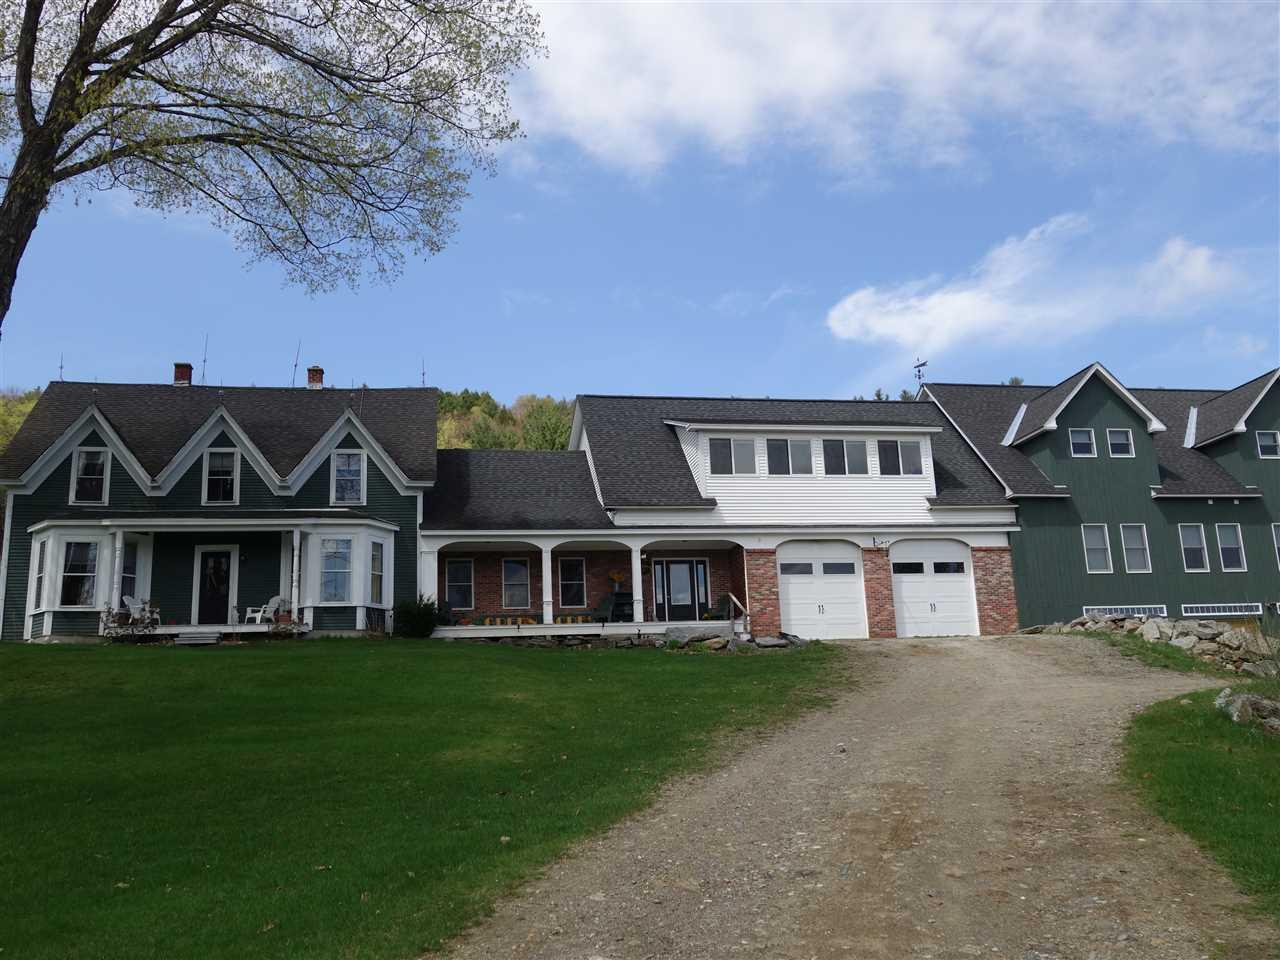 674 Old Walpole Rd Surry Nh Mls 4632598 Better Homes And Gardens Real Estate